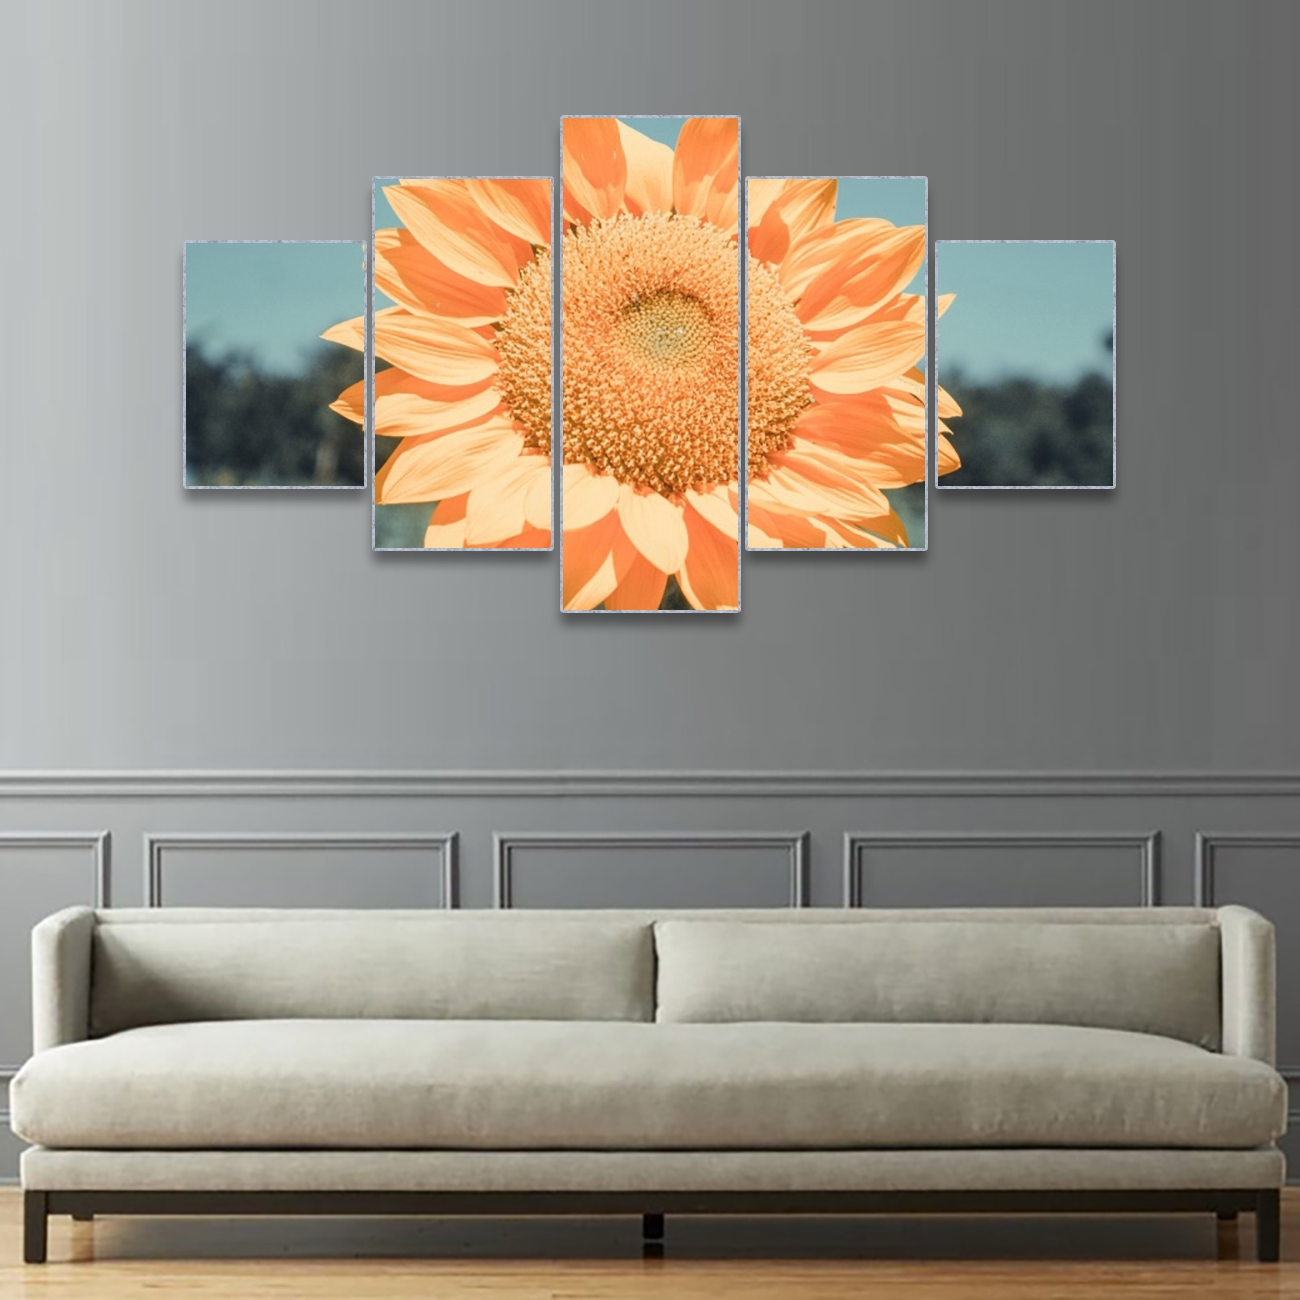 Laeacco Canvas Calligraphy Painting 5 Panel Sunflower Wall Artwork Abstract Garden Posters Prints Nordic Home Decoration Picture in Painting Calligraphy from Home Garden